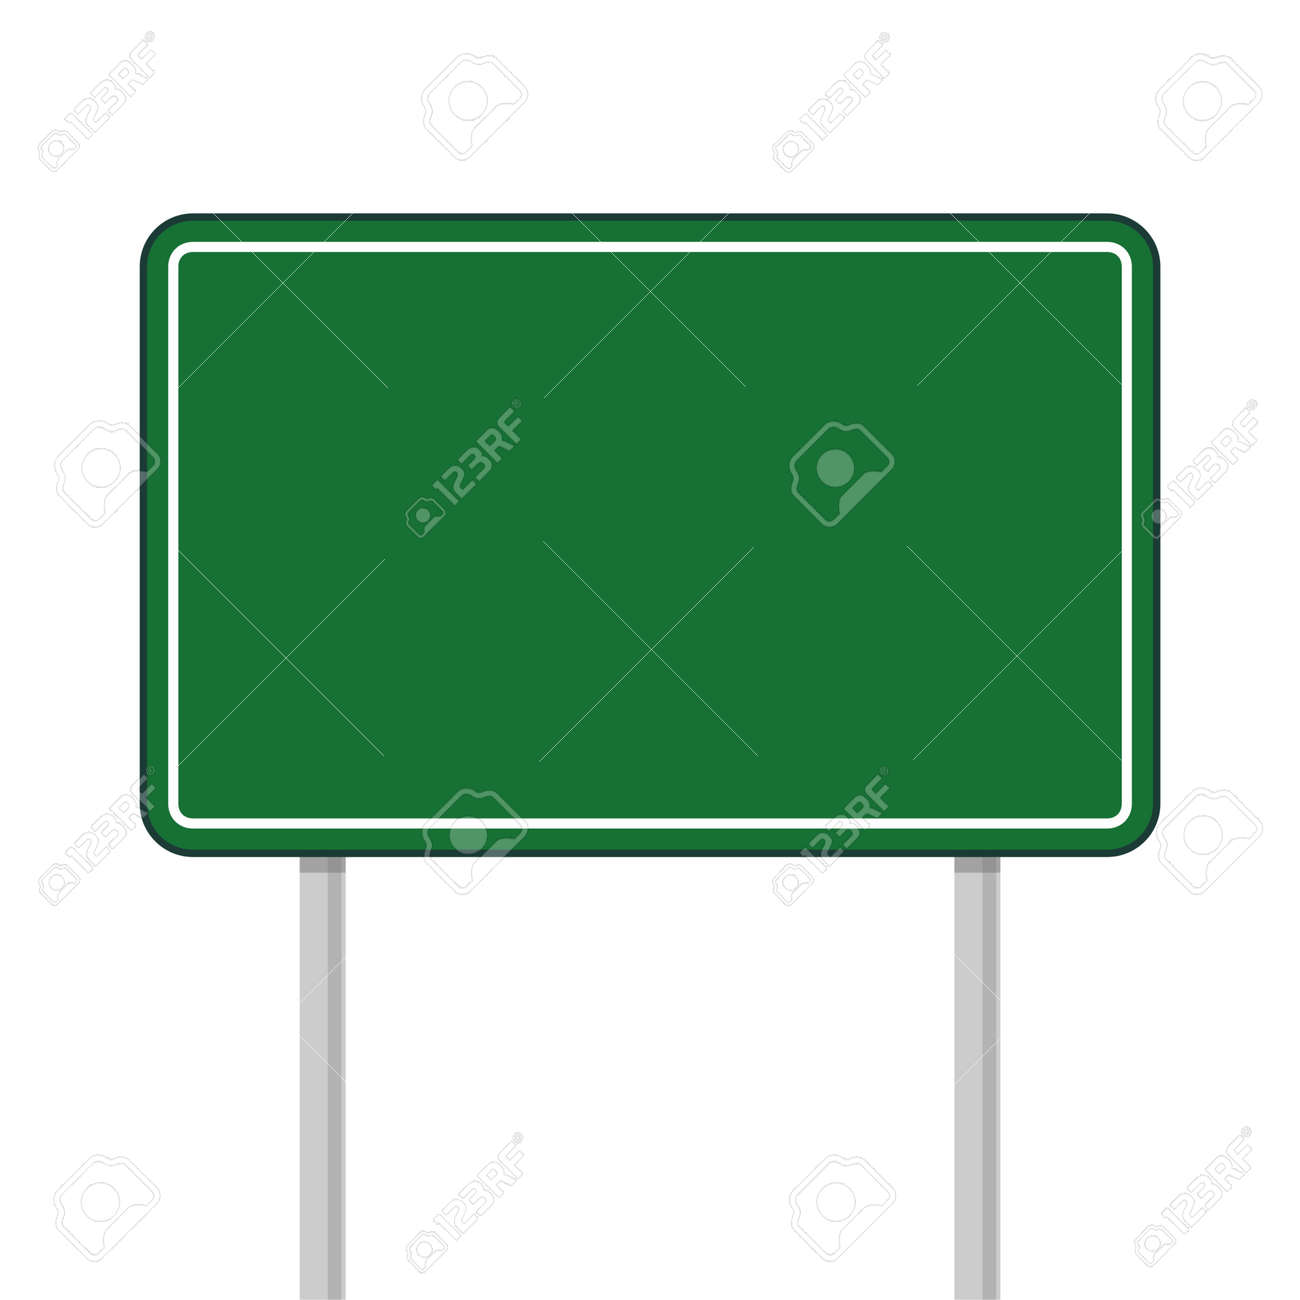 Road green traffic sign, Highway or street city sign on white background - 155461833